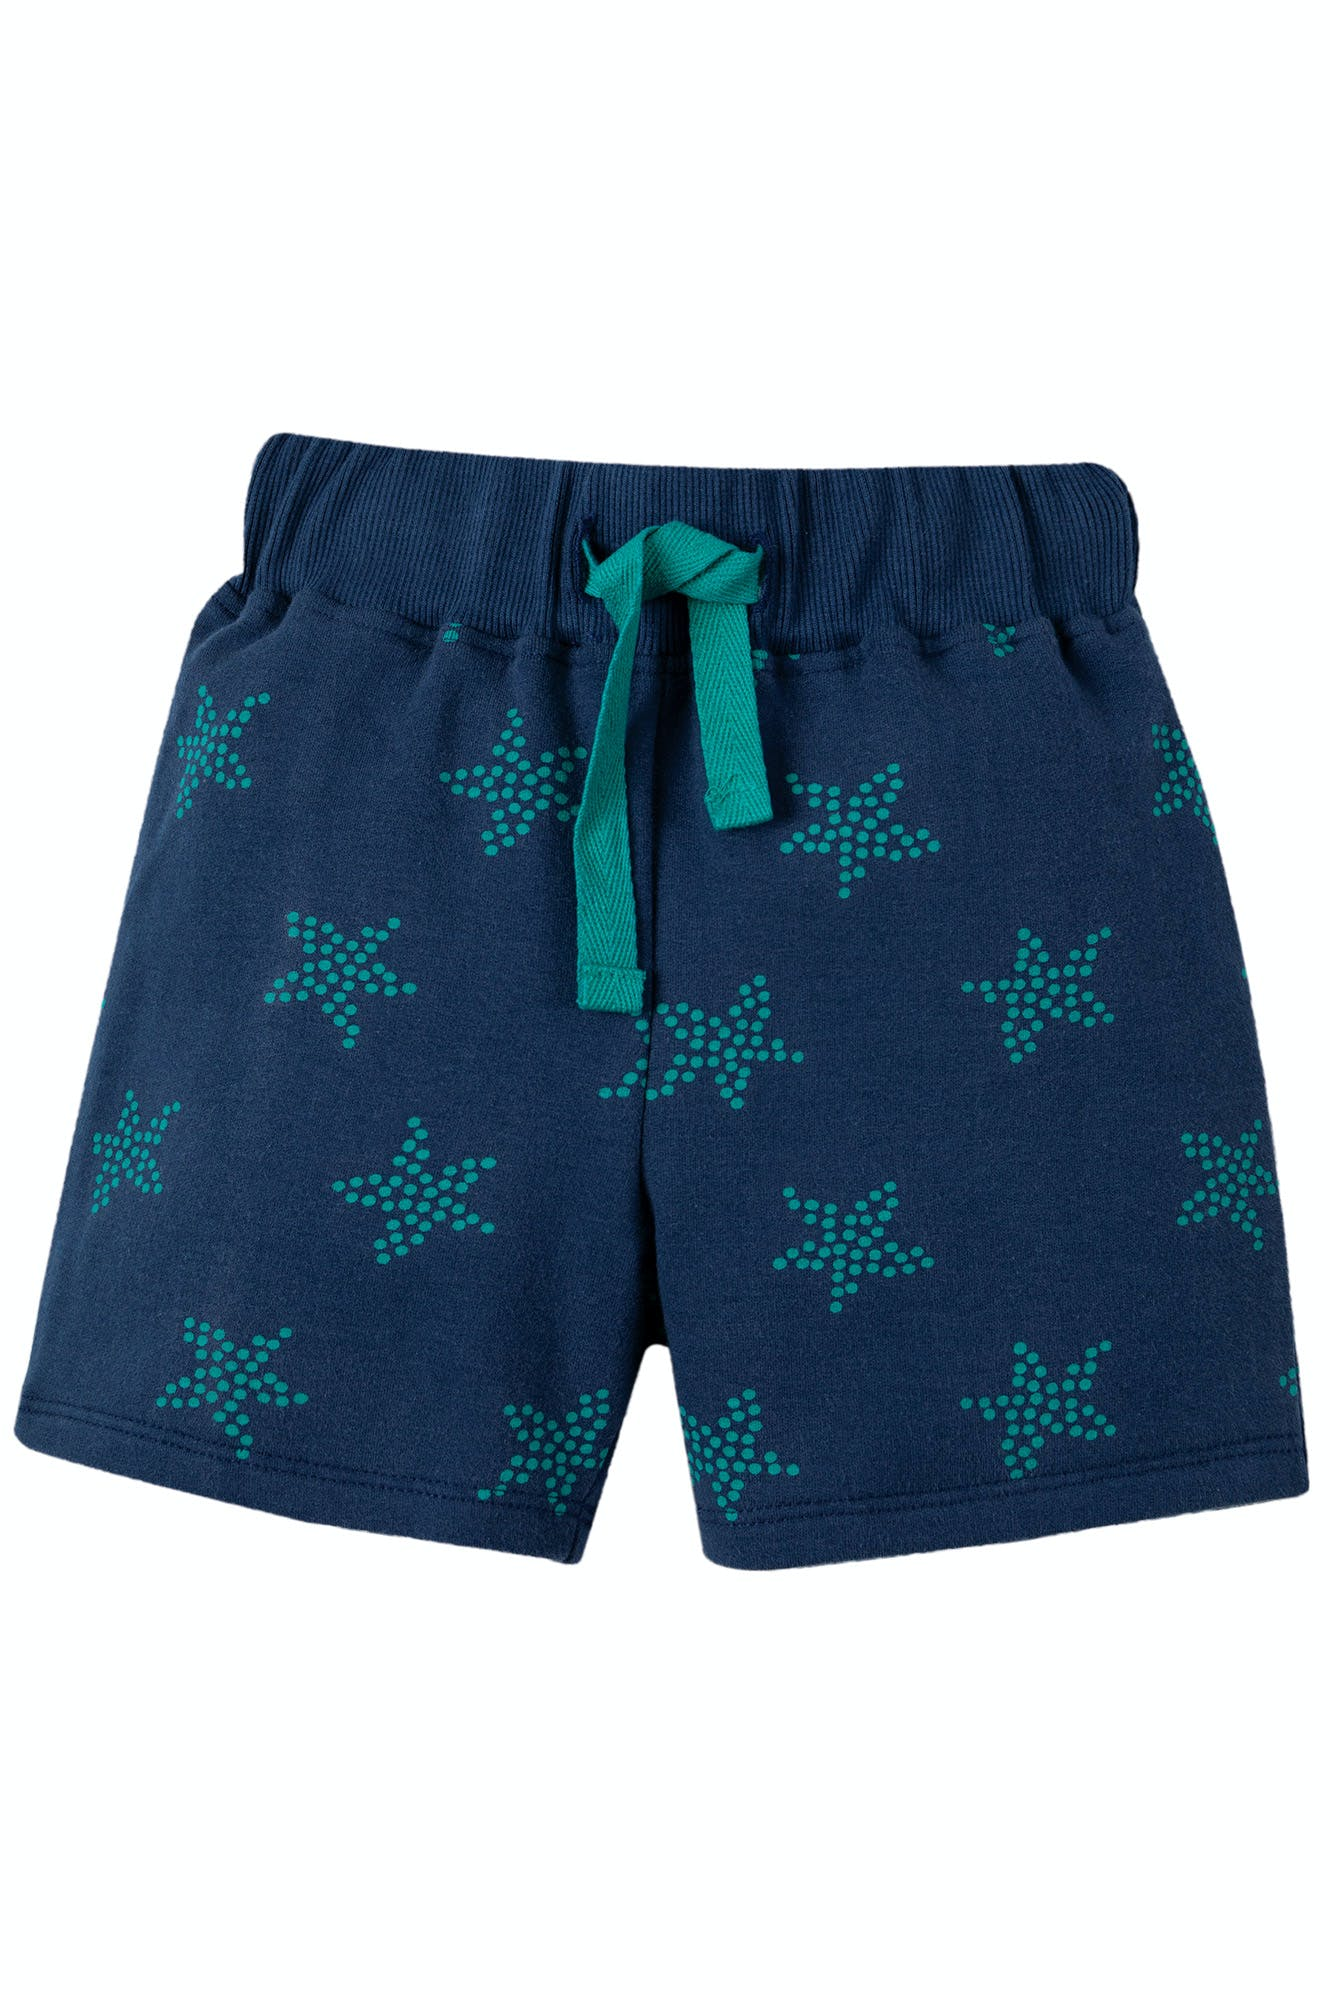 Click to view product details and reviews for Little Sammy Shorts.